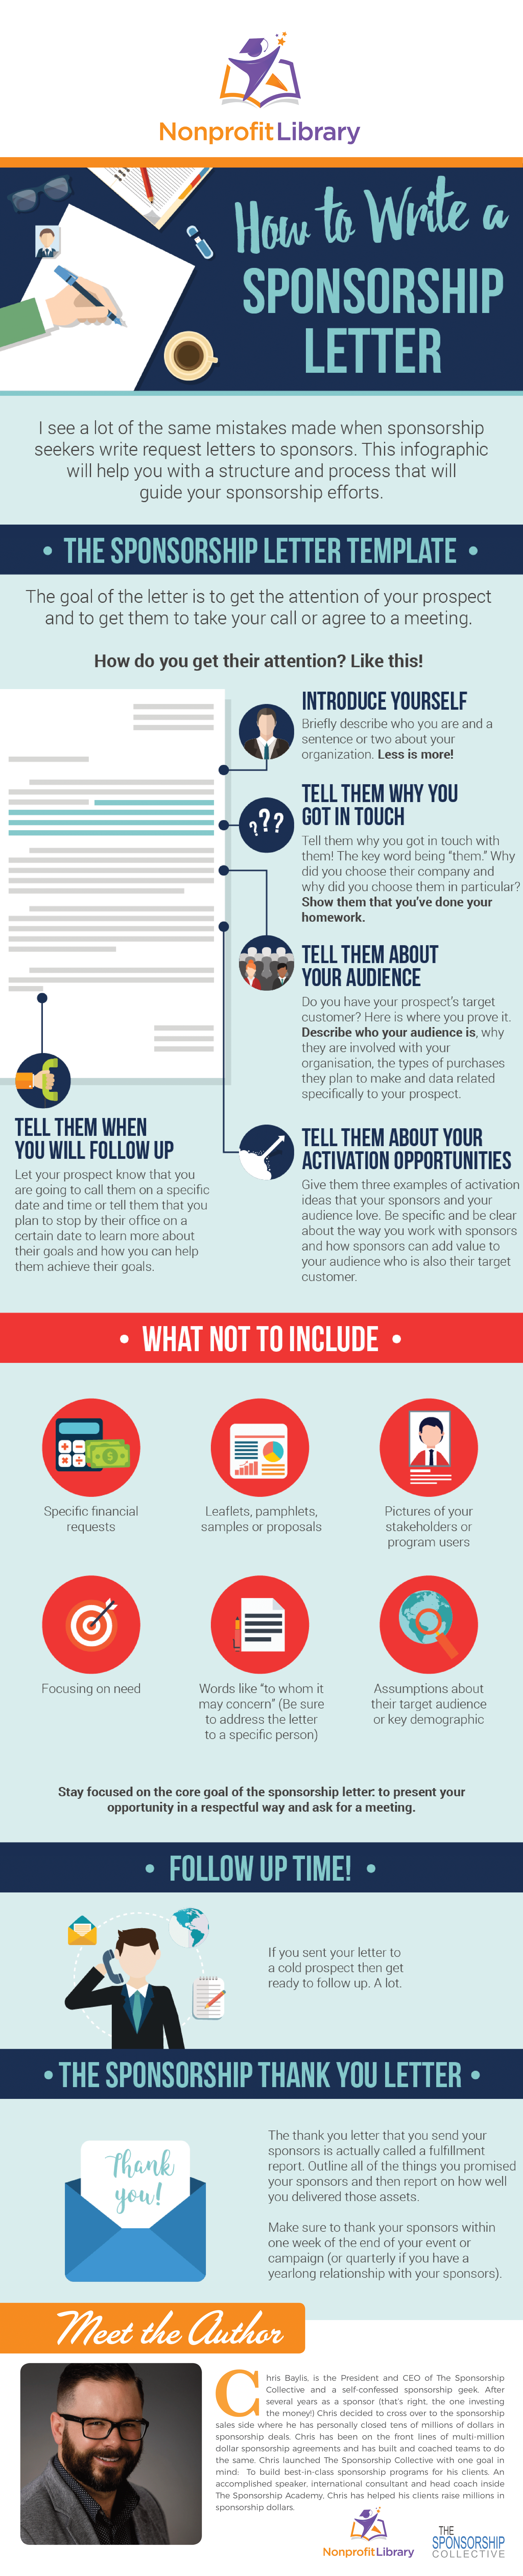 How-to-Write-a-Sponsorship-Letter-Infographic